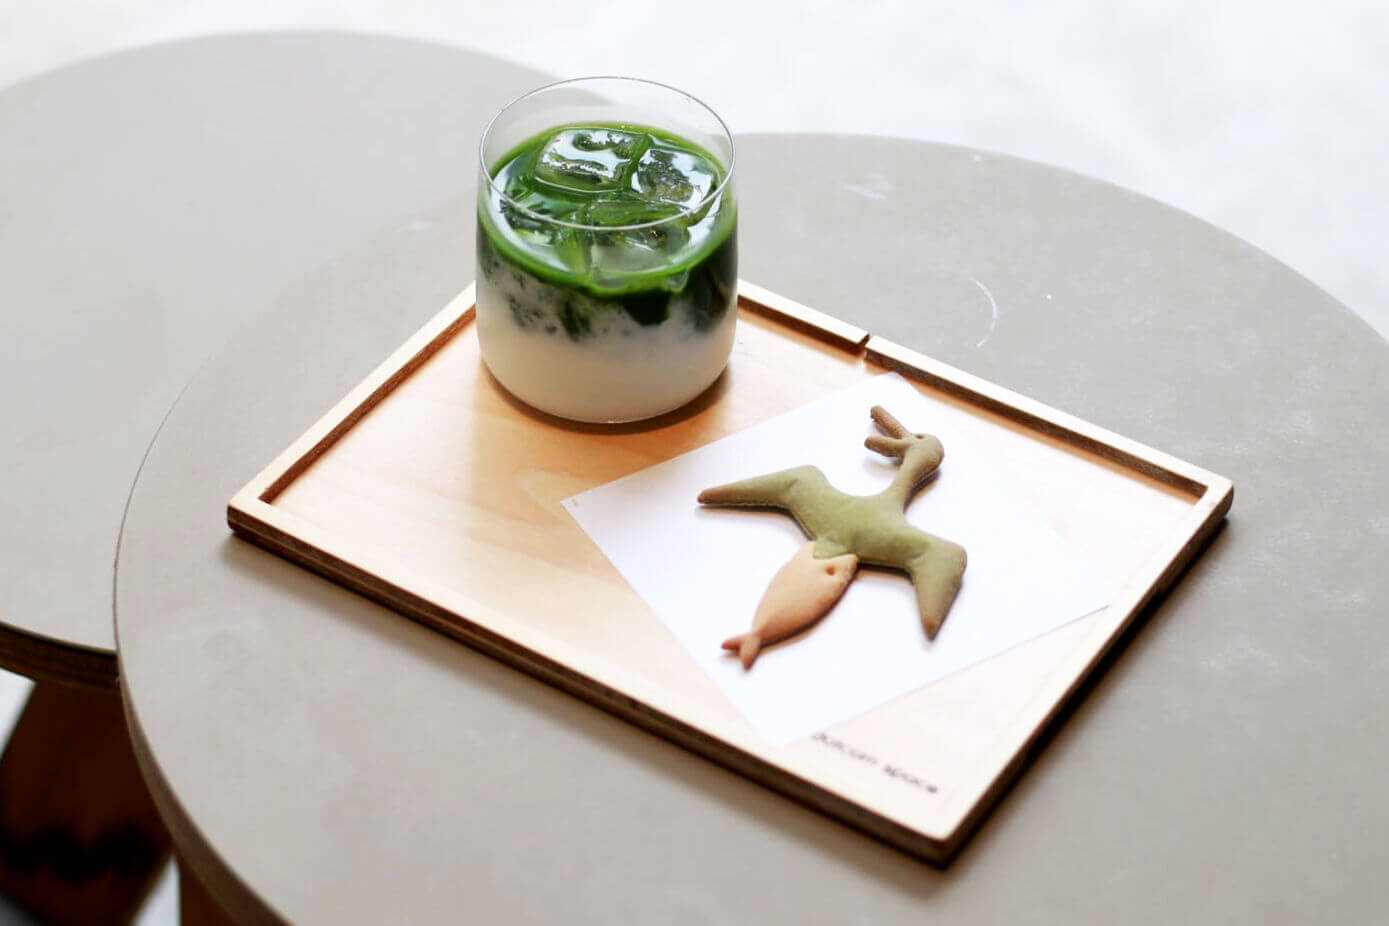 dotcom space Tokyoの抹茶ラテ×下剋上鮎/¥935(税込み)